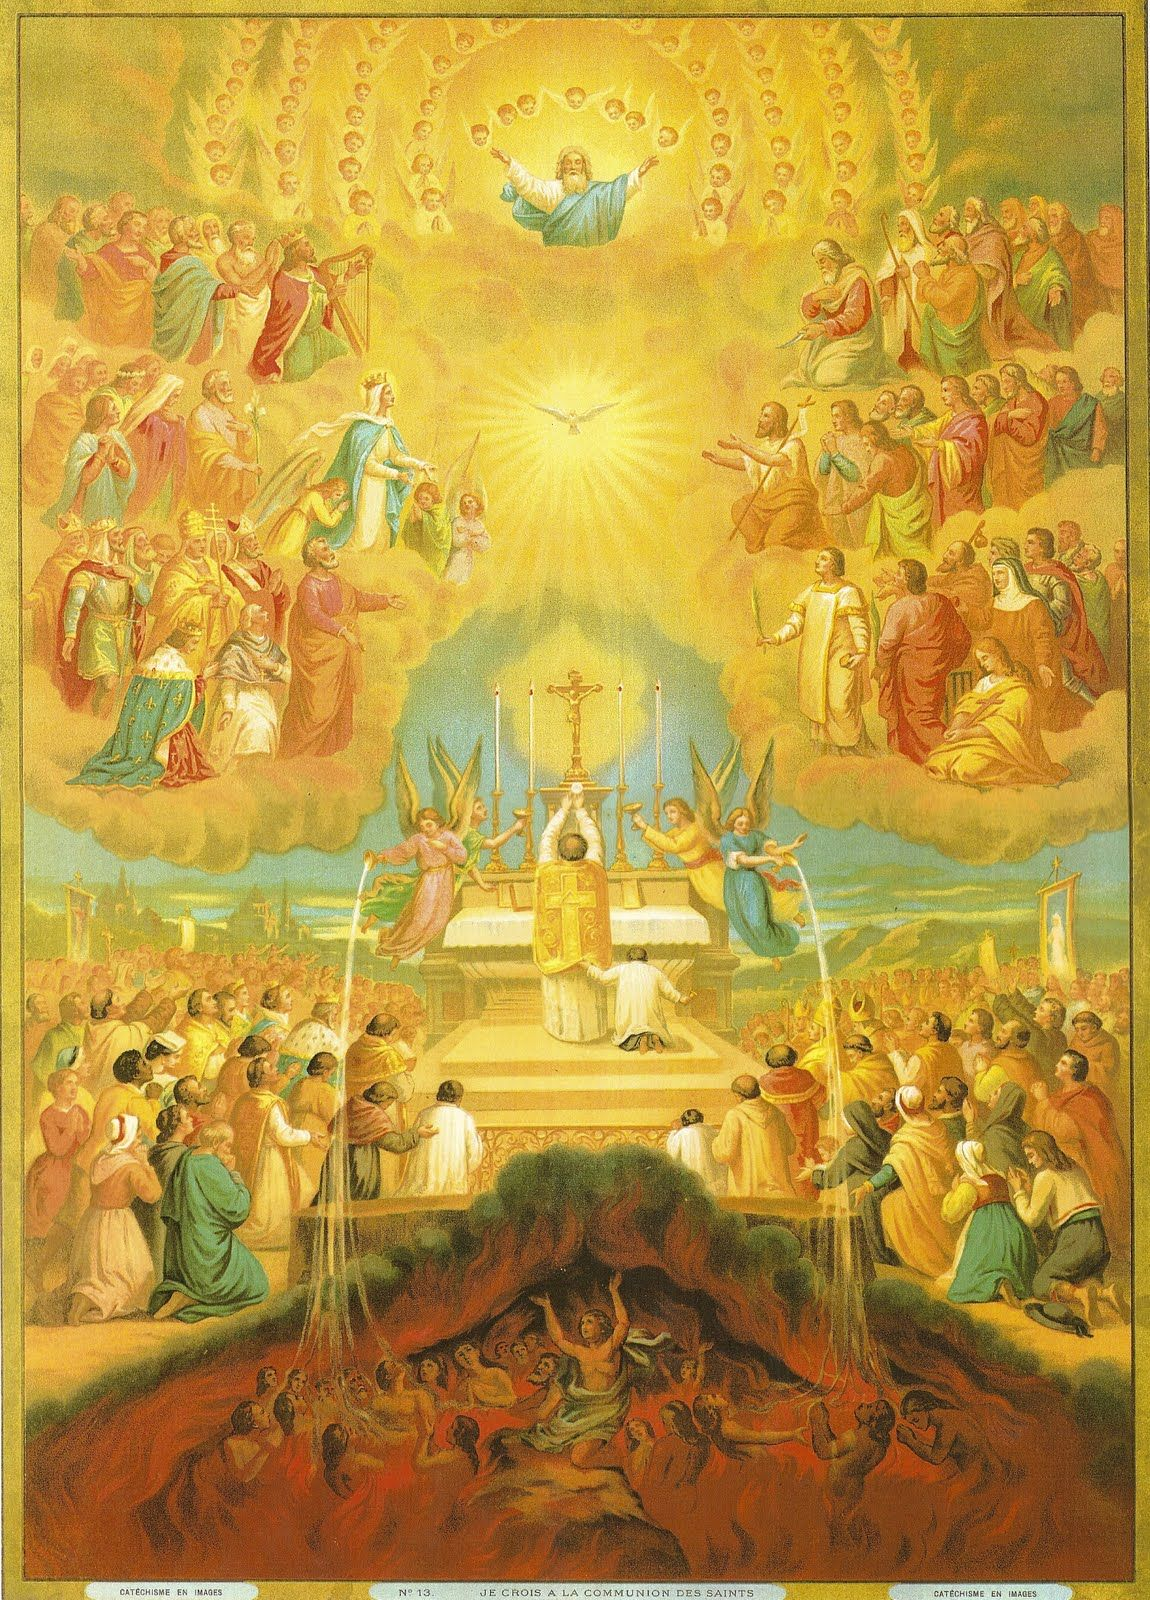 All Saints' Day and All Souls' Day